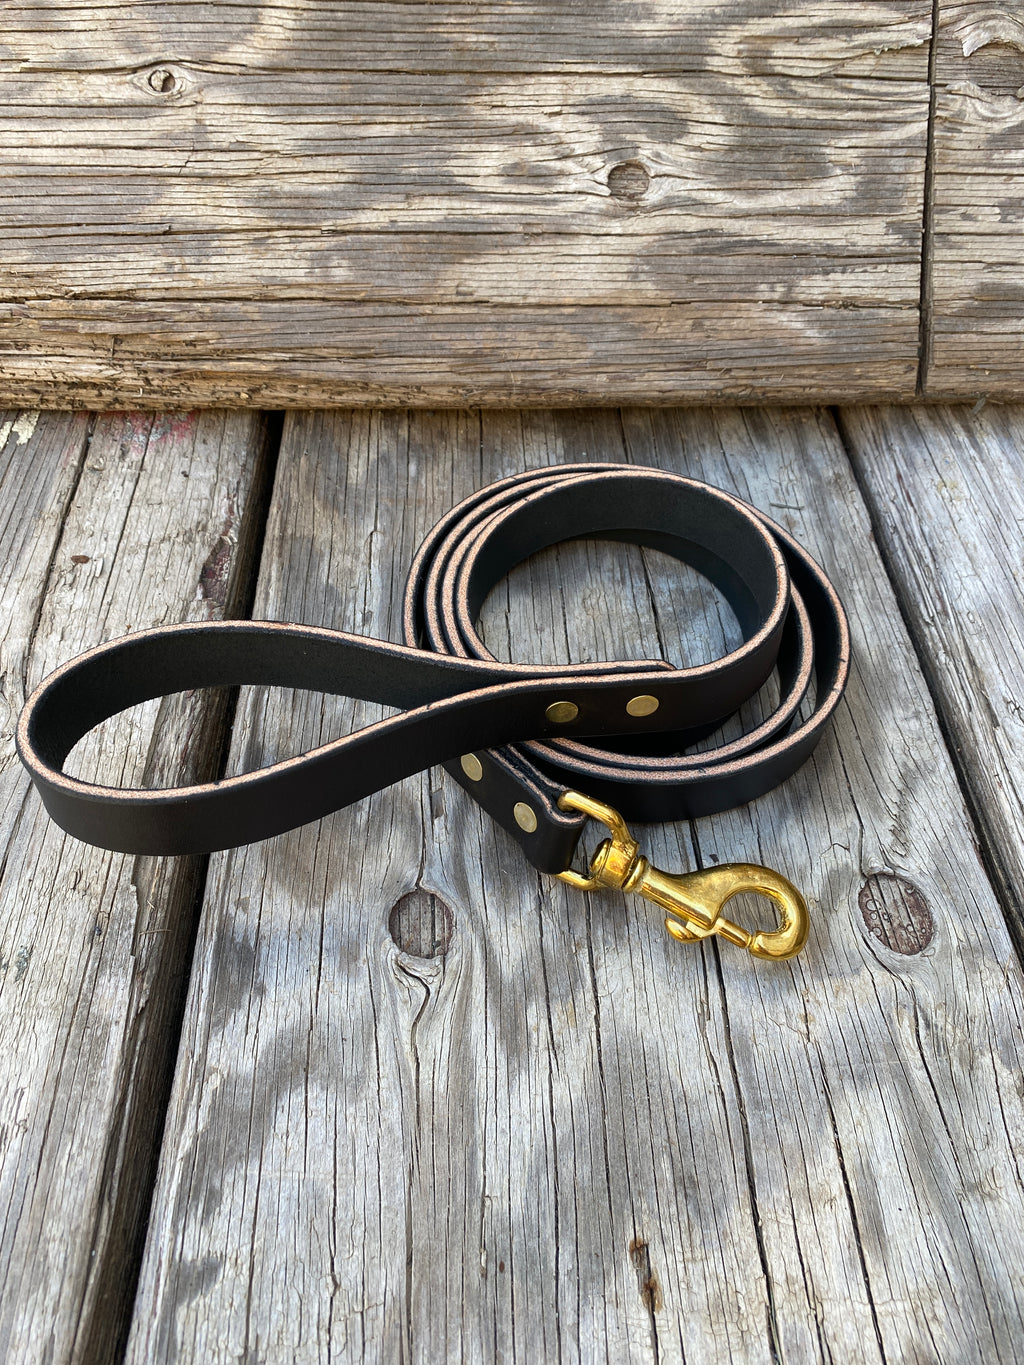 Dog Leash - English Bridle